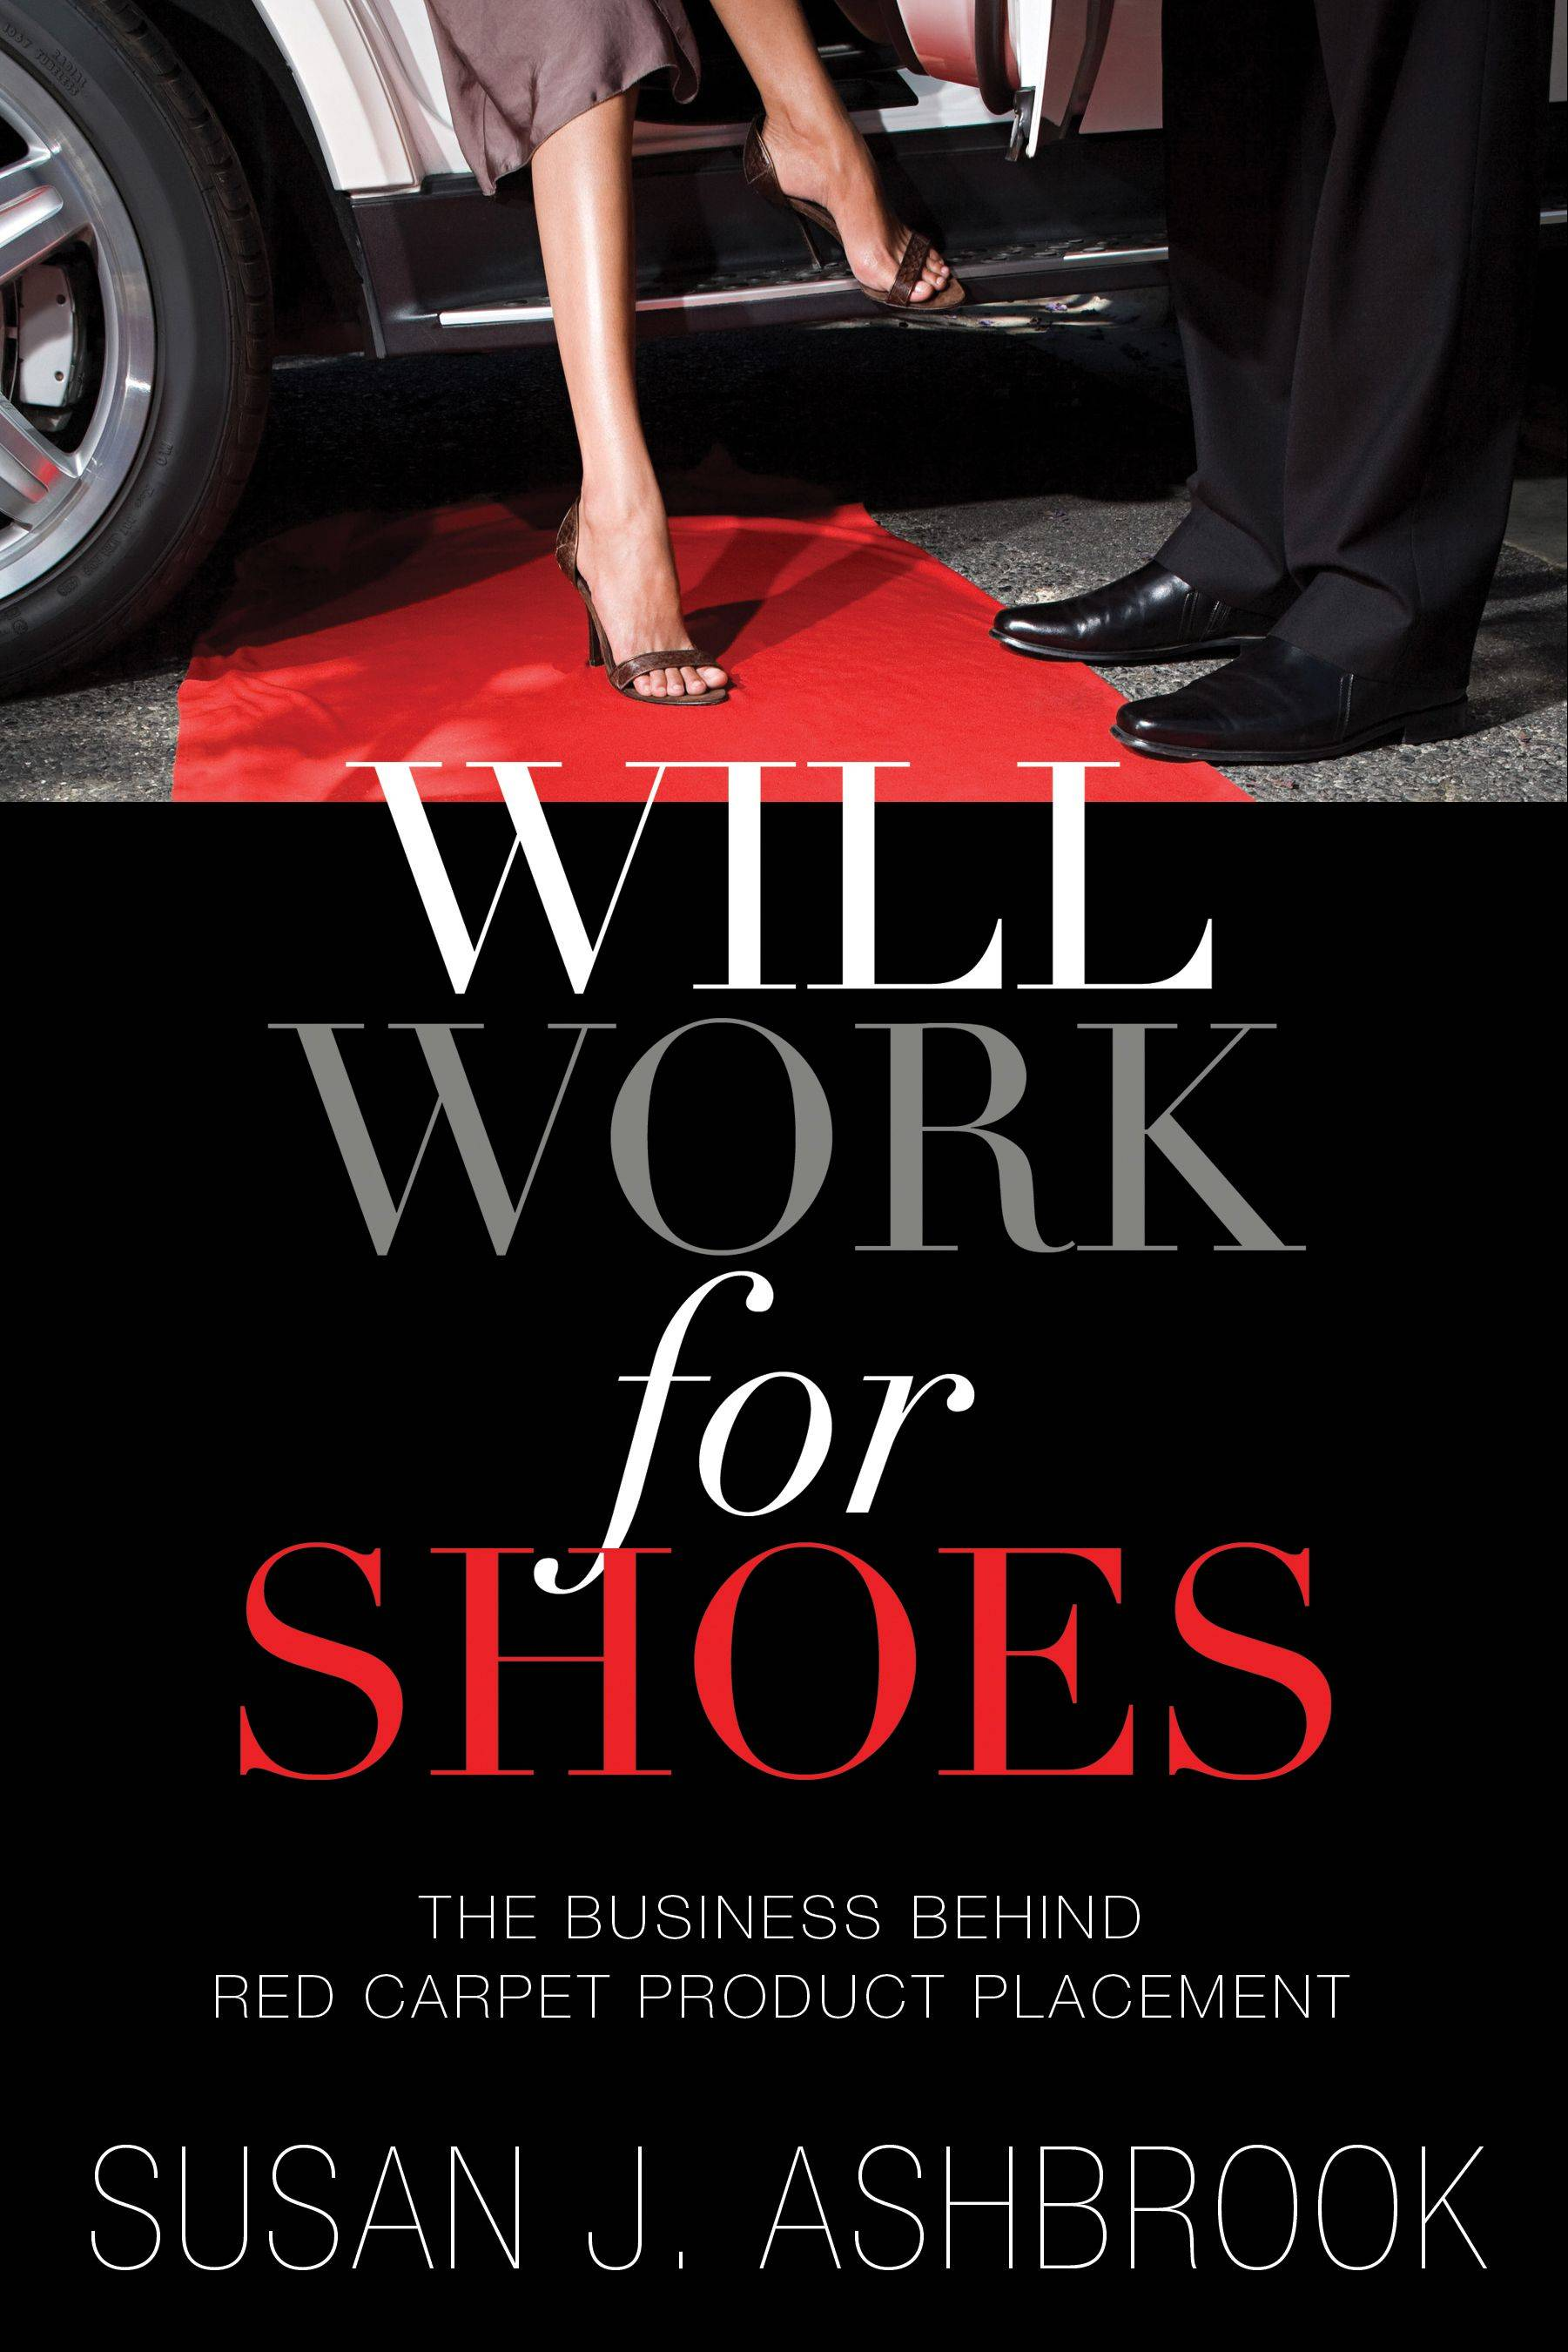 """Will Work for Shoes: The Business Behind Red Carpet Placement"" is the new book by celebrity stylist and Arlington Heights native Susan J. Ashbrook."